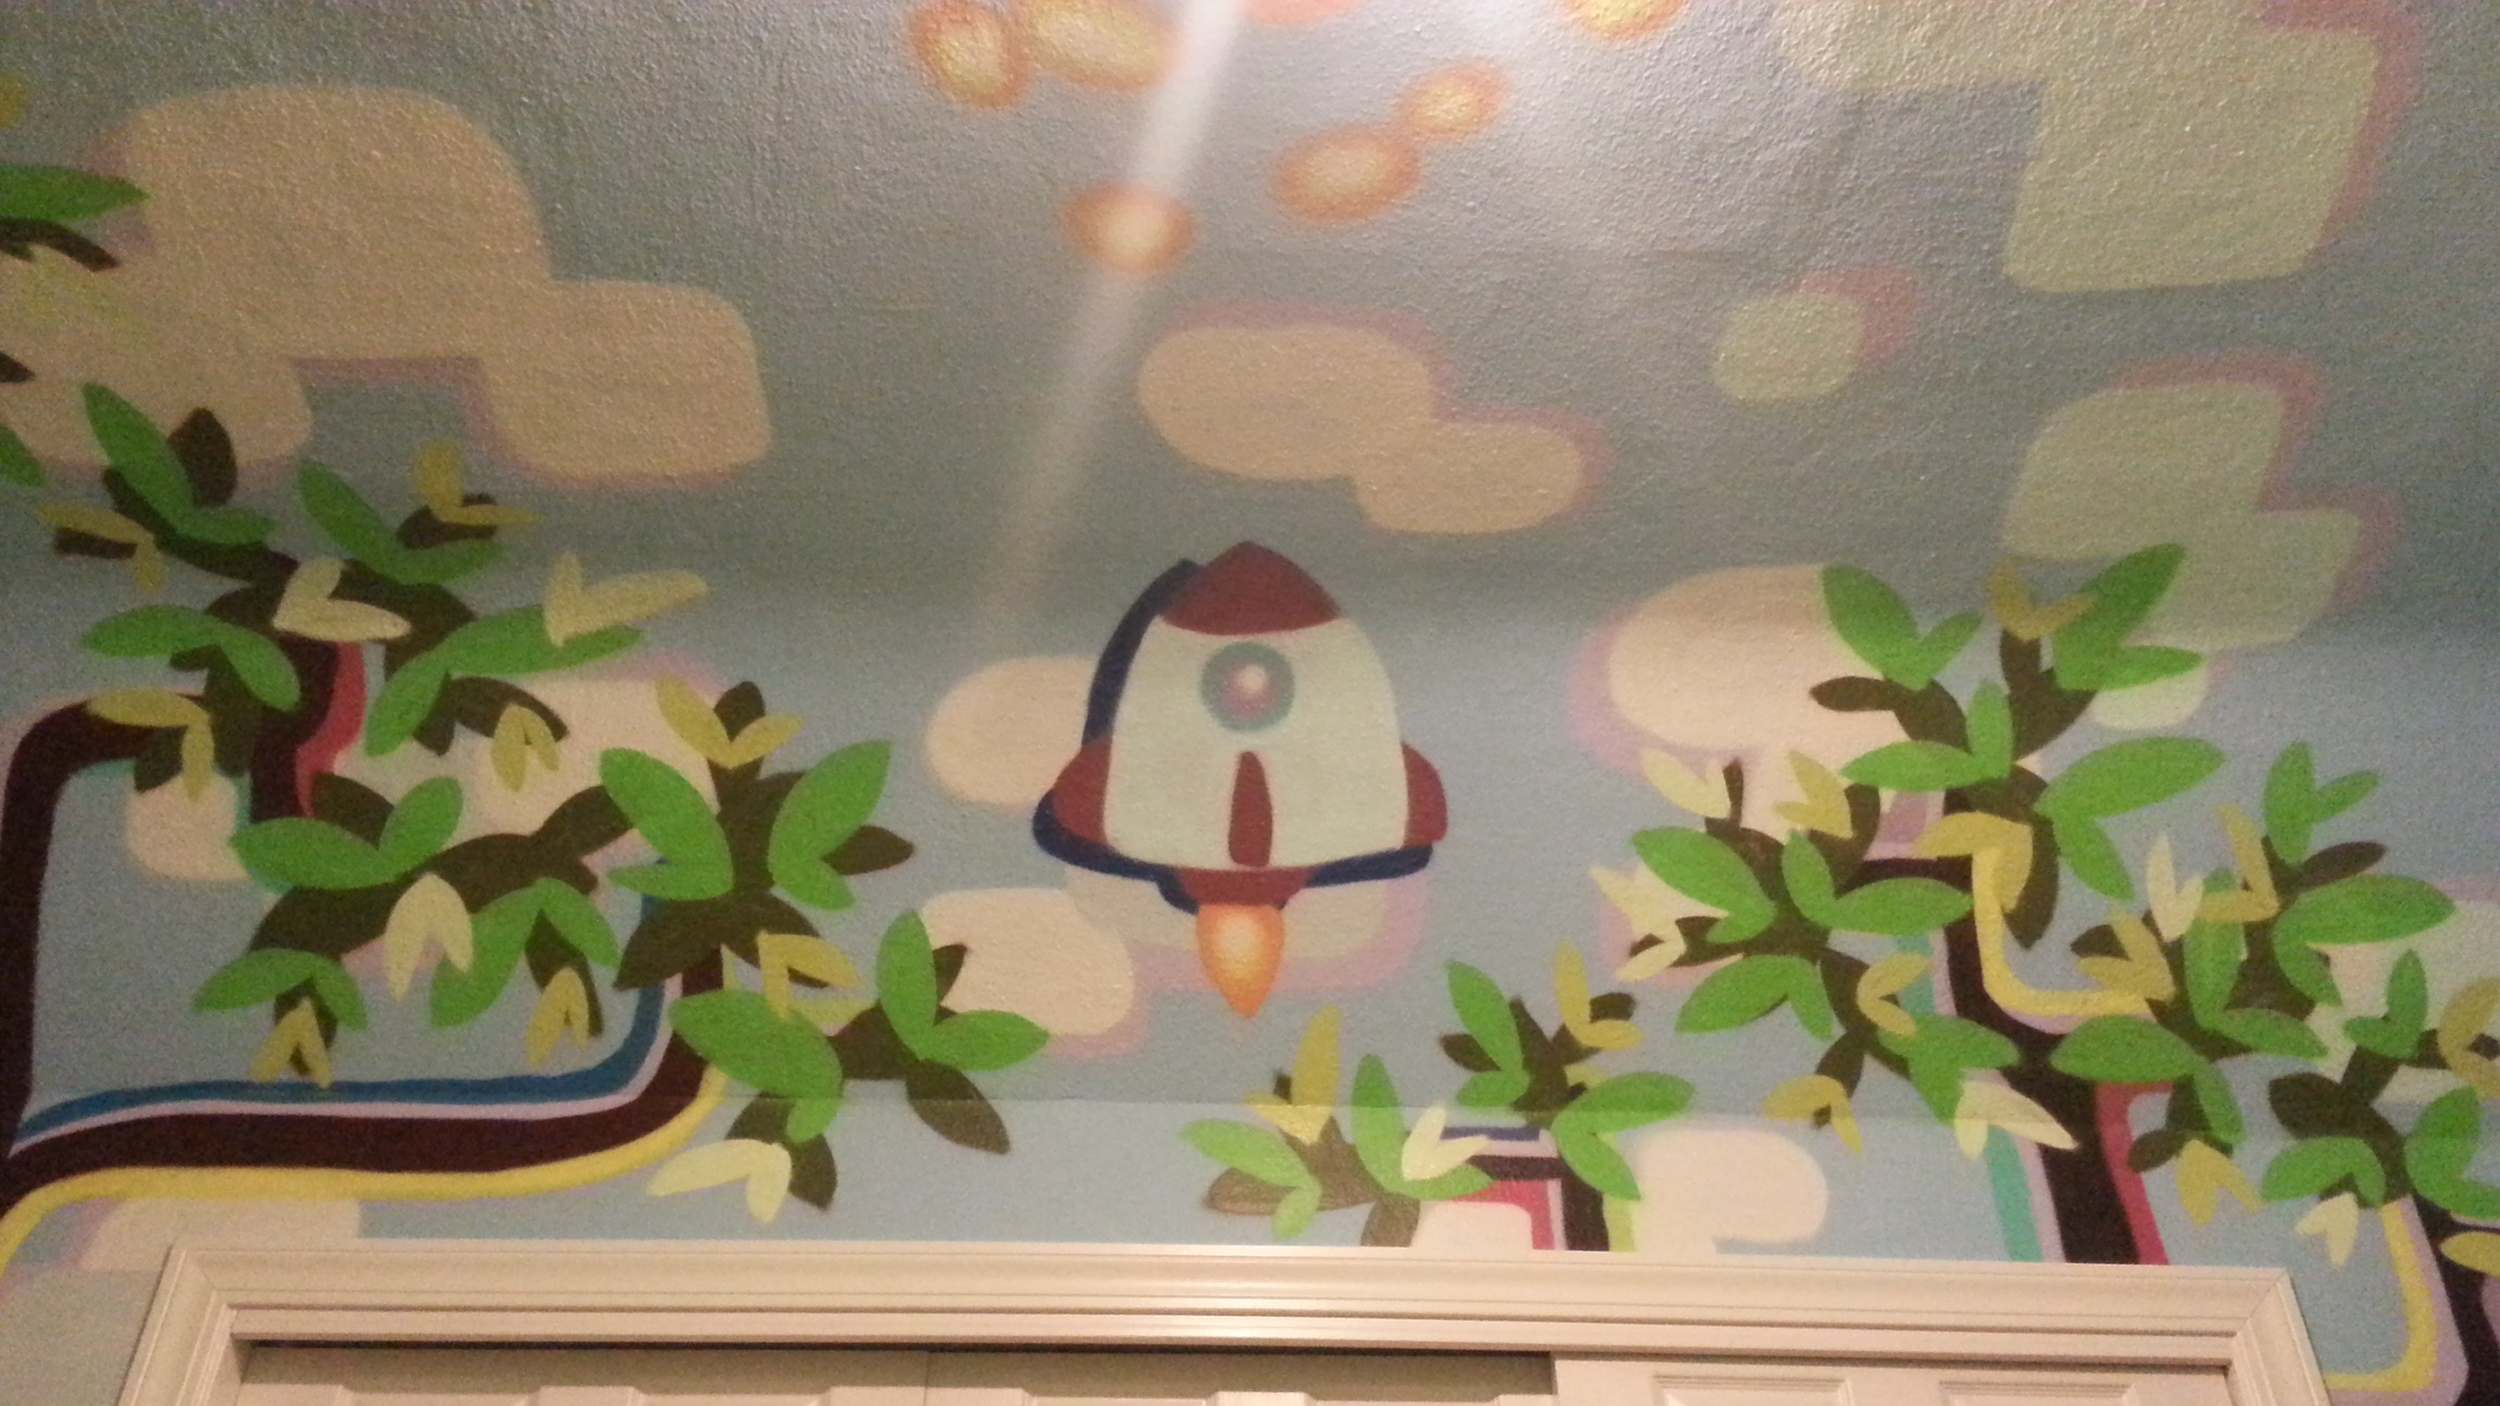 wyatt_BEDROOM_MURAL_004.jpg